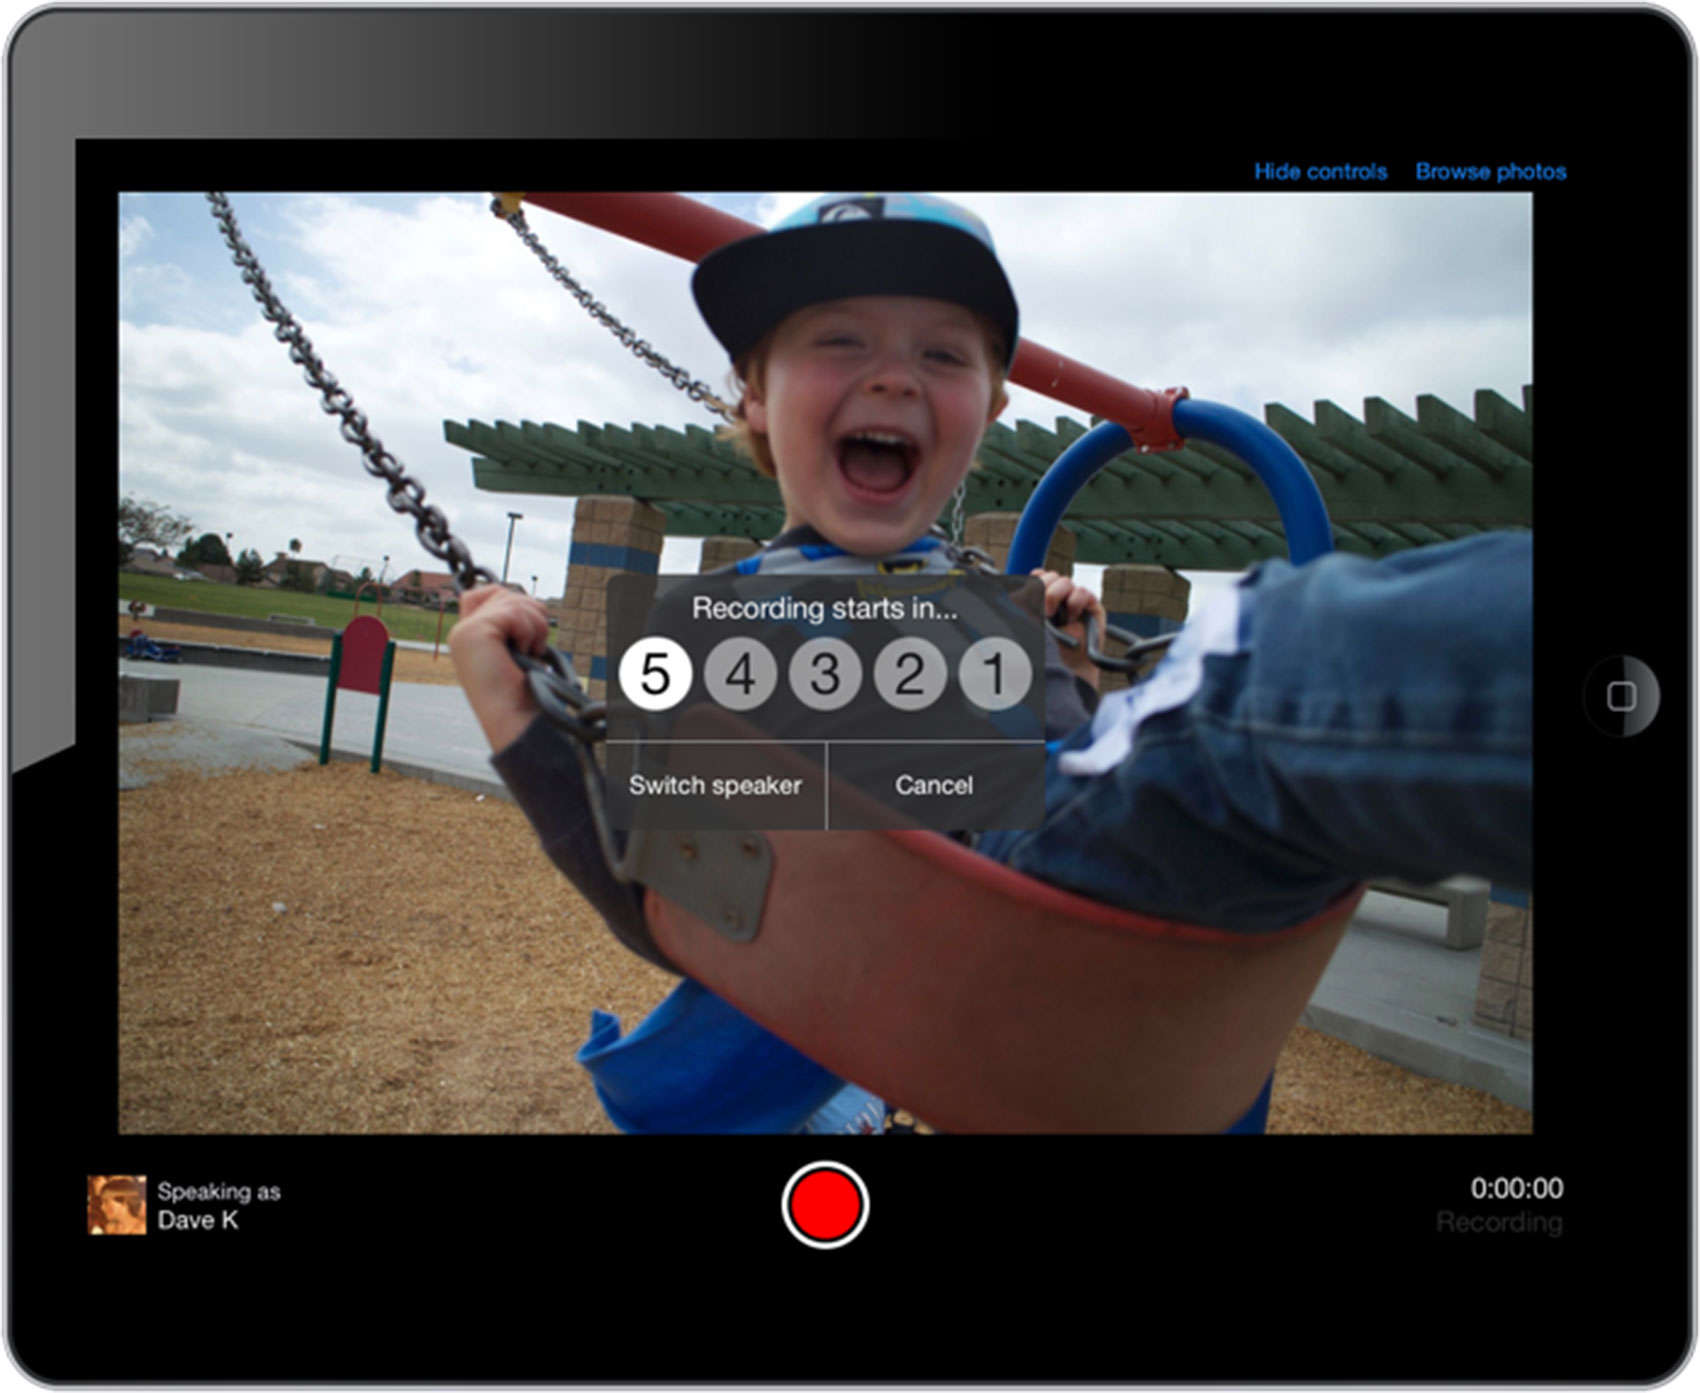 everyStory allows you to curate digital photos albums and add audio to each photo.